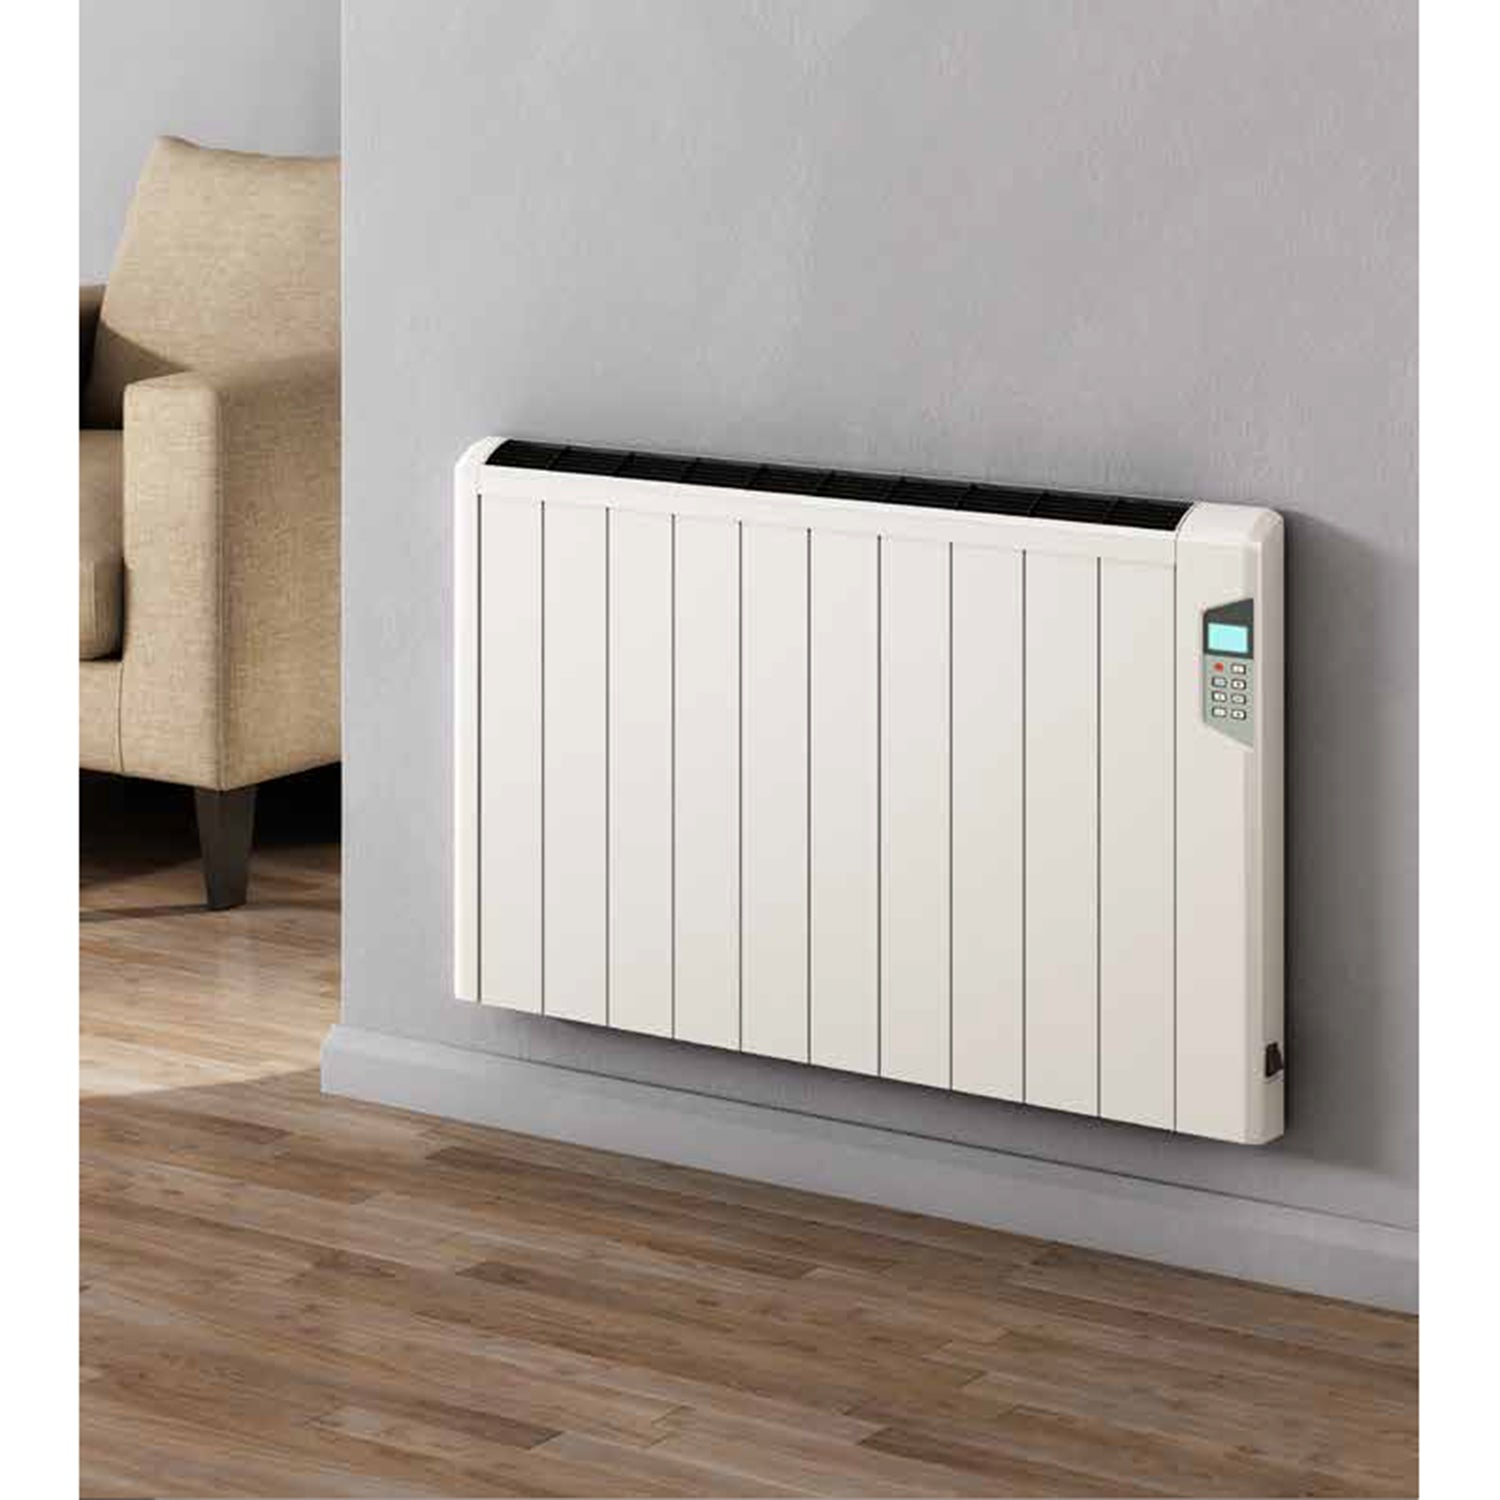 REINA ARLEC ELECTRIC RADIATOR